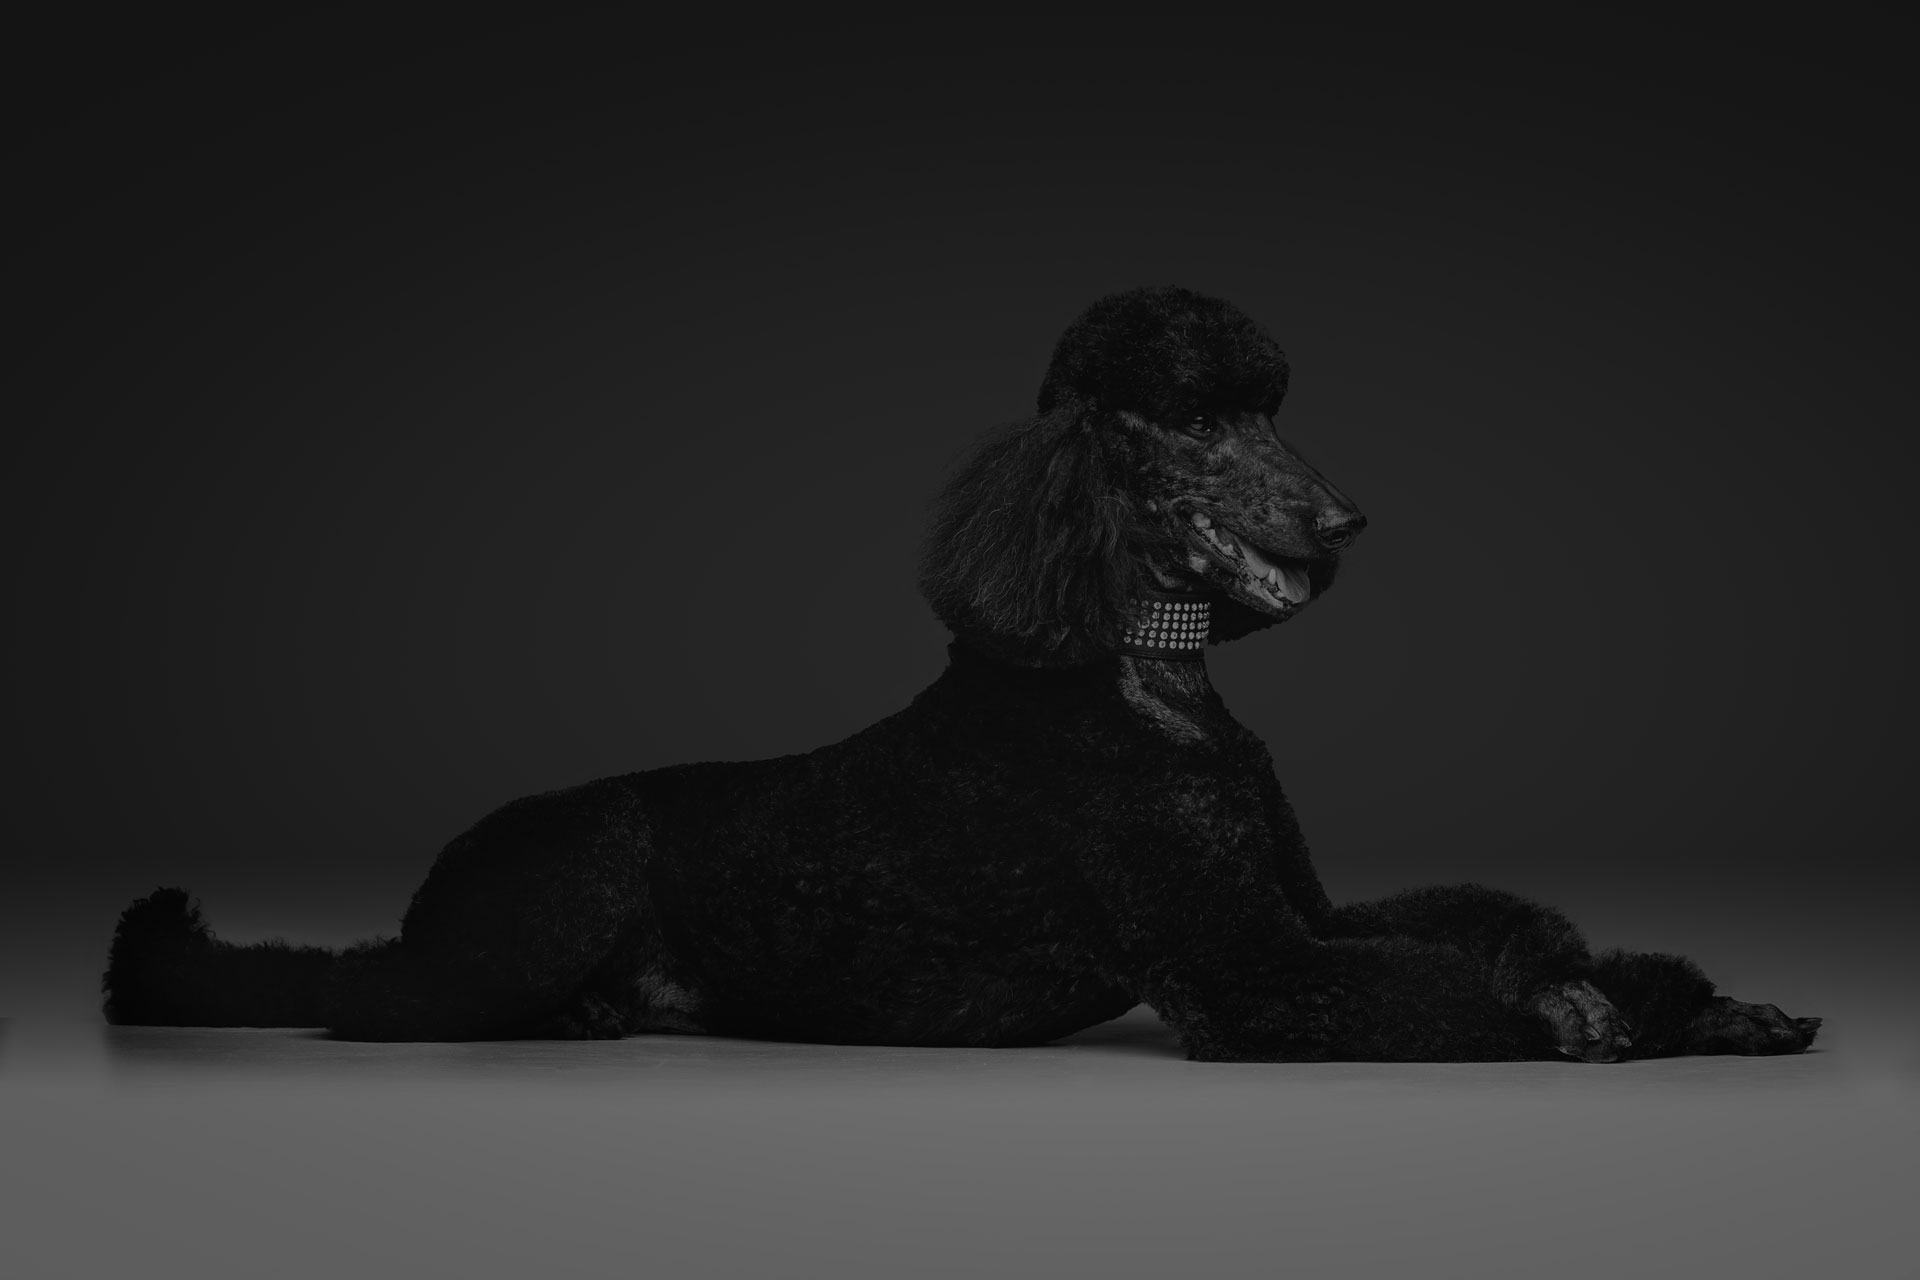 beautiful black poodle on grey background